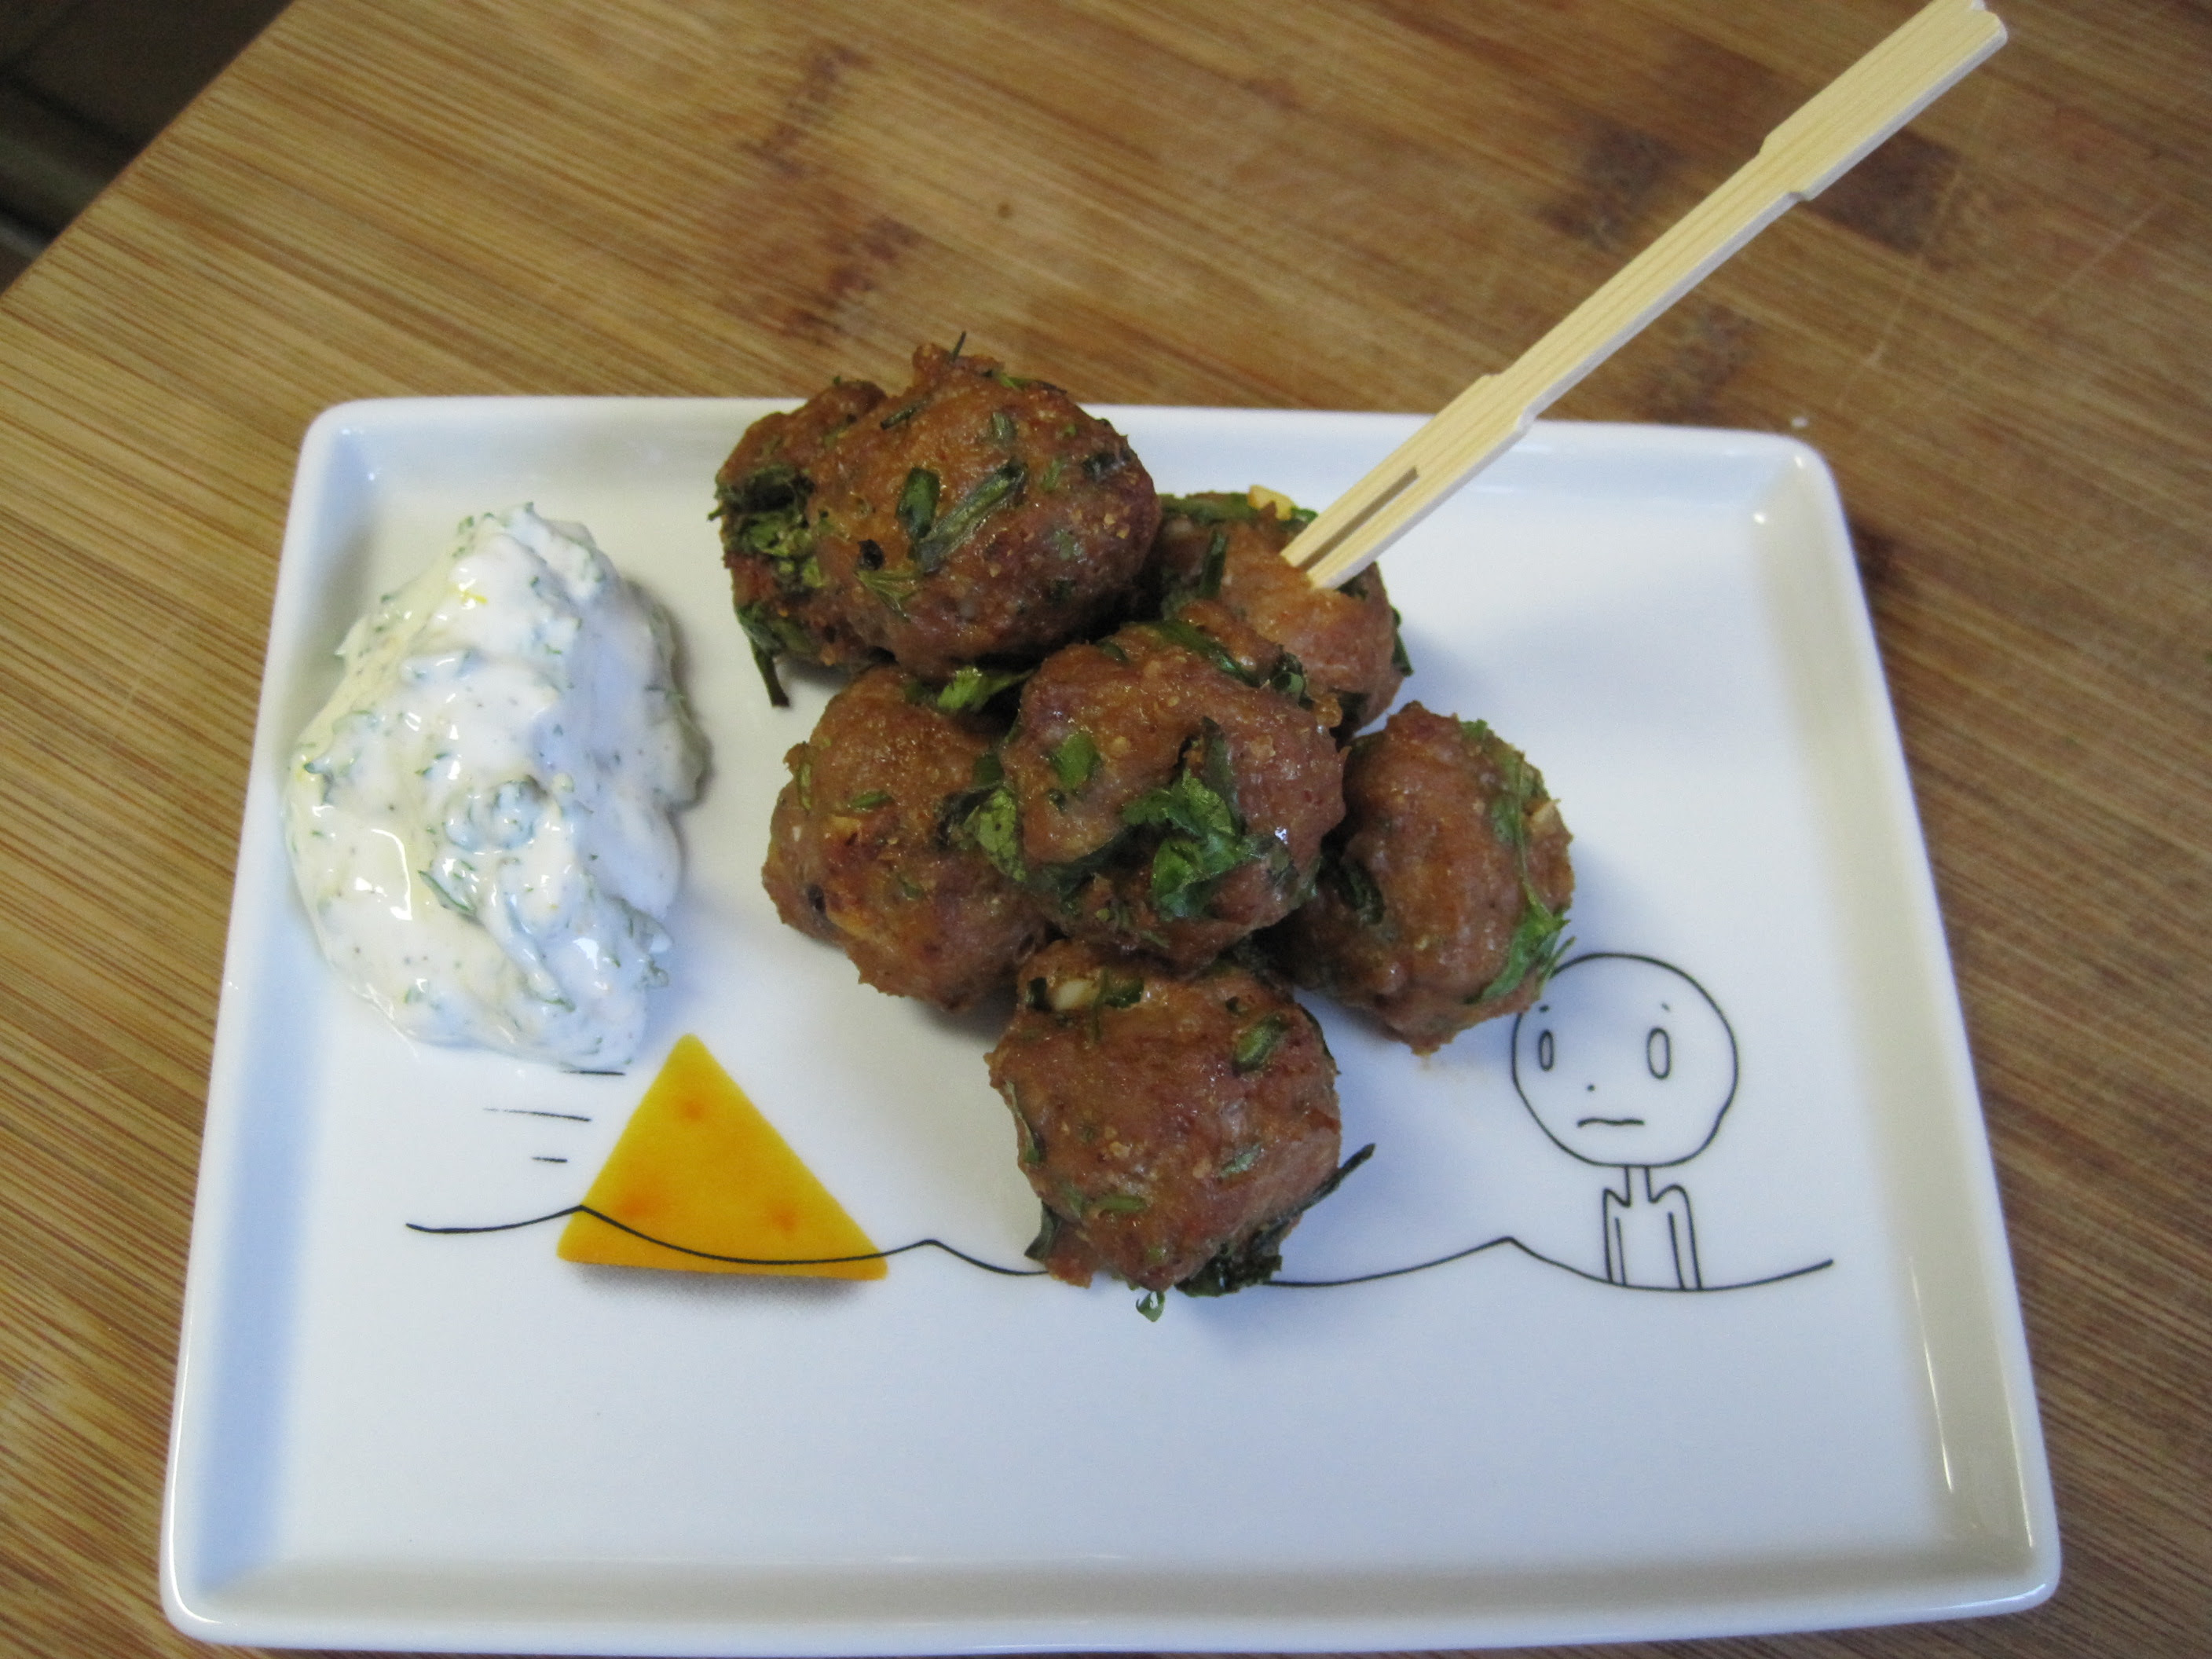 dukan diet recipe Moroccan Beef Skewers and Turkey Meatballs